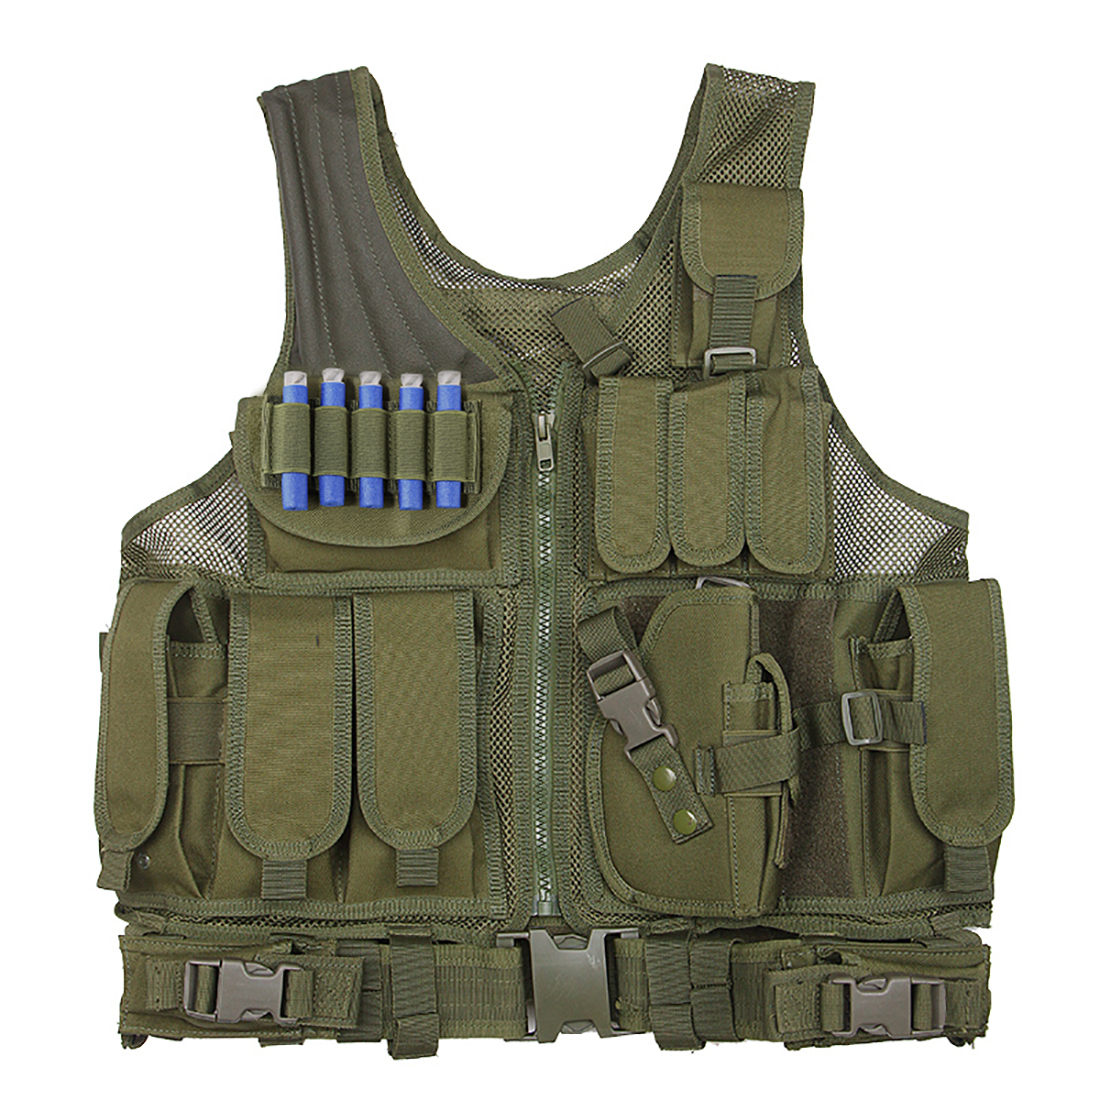 NFSTRIKE Military Tactical accessories Multi function Shooting Protective Vests for Nerf Defense Tactical accessories